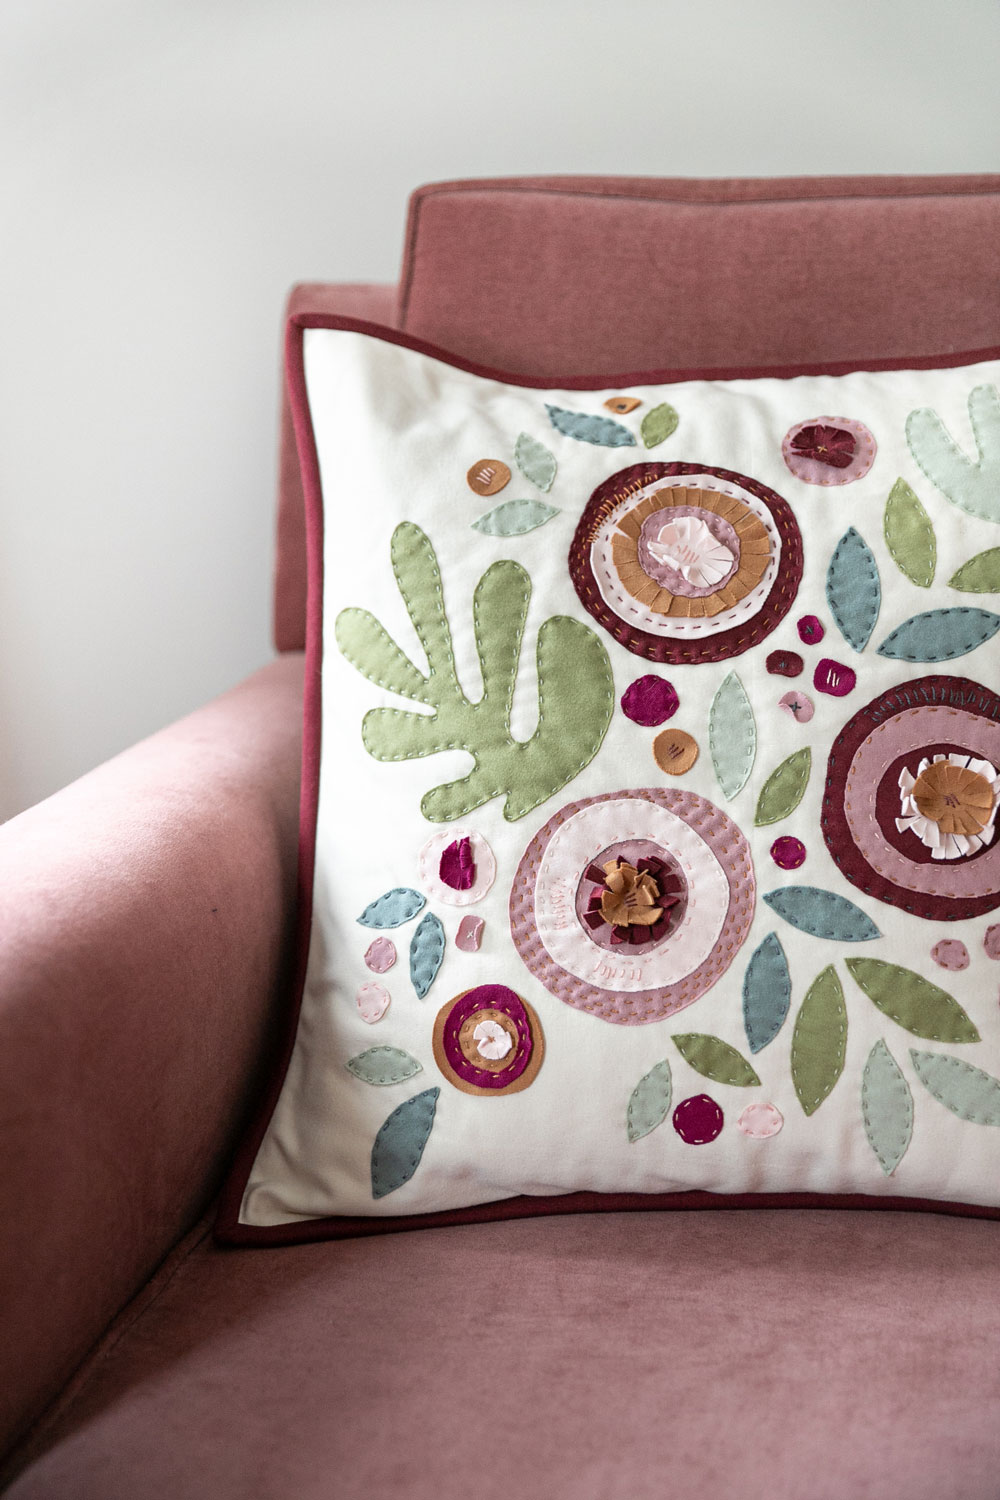 Make a modern appliqué pillow with knits! By using templates from the Bohemian Garden quilt pattern, you can create a buttery soft handmade pillow. suzyquilts.com #quiltedpillow